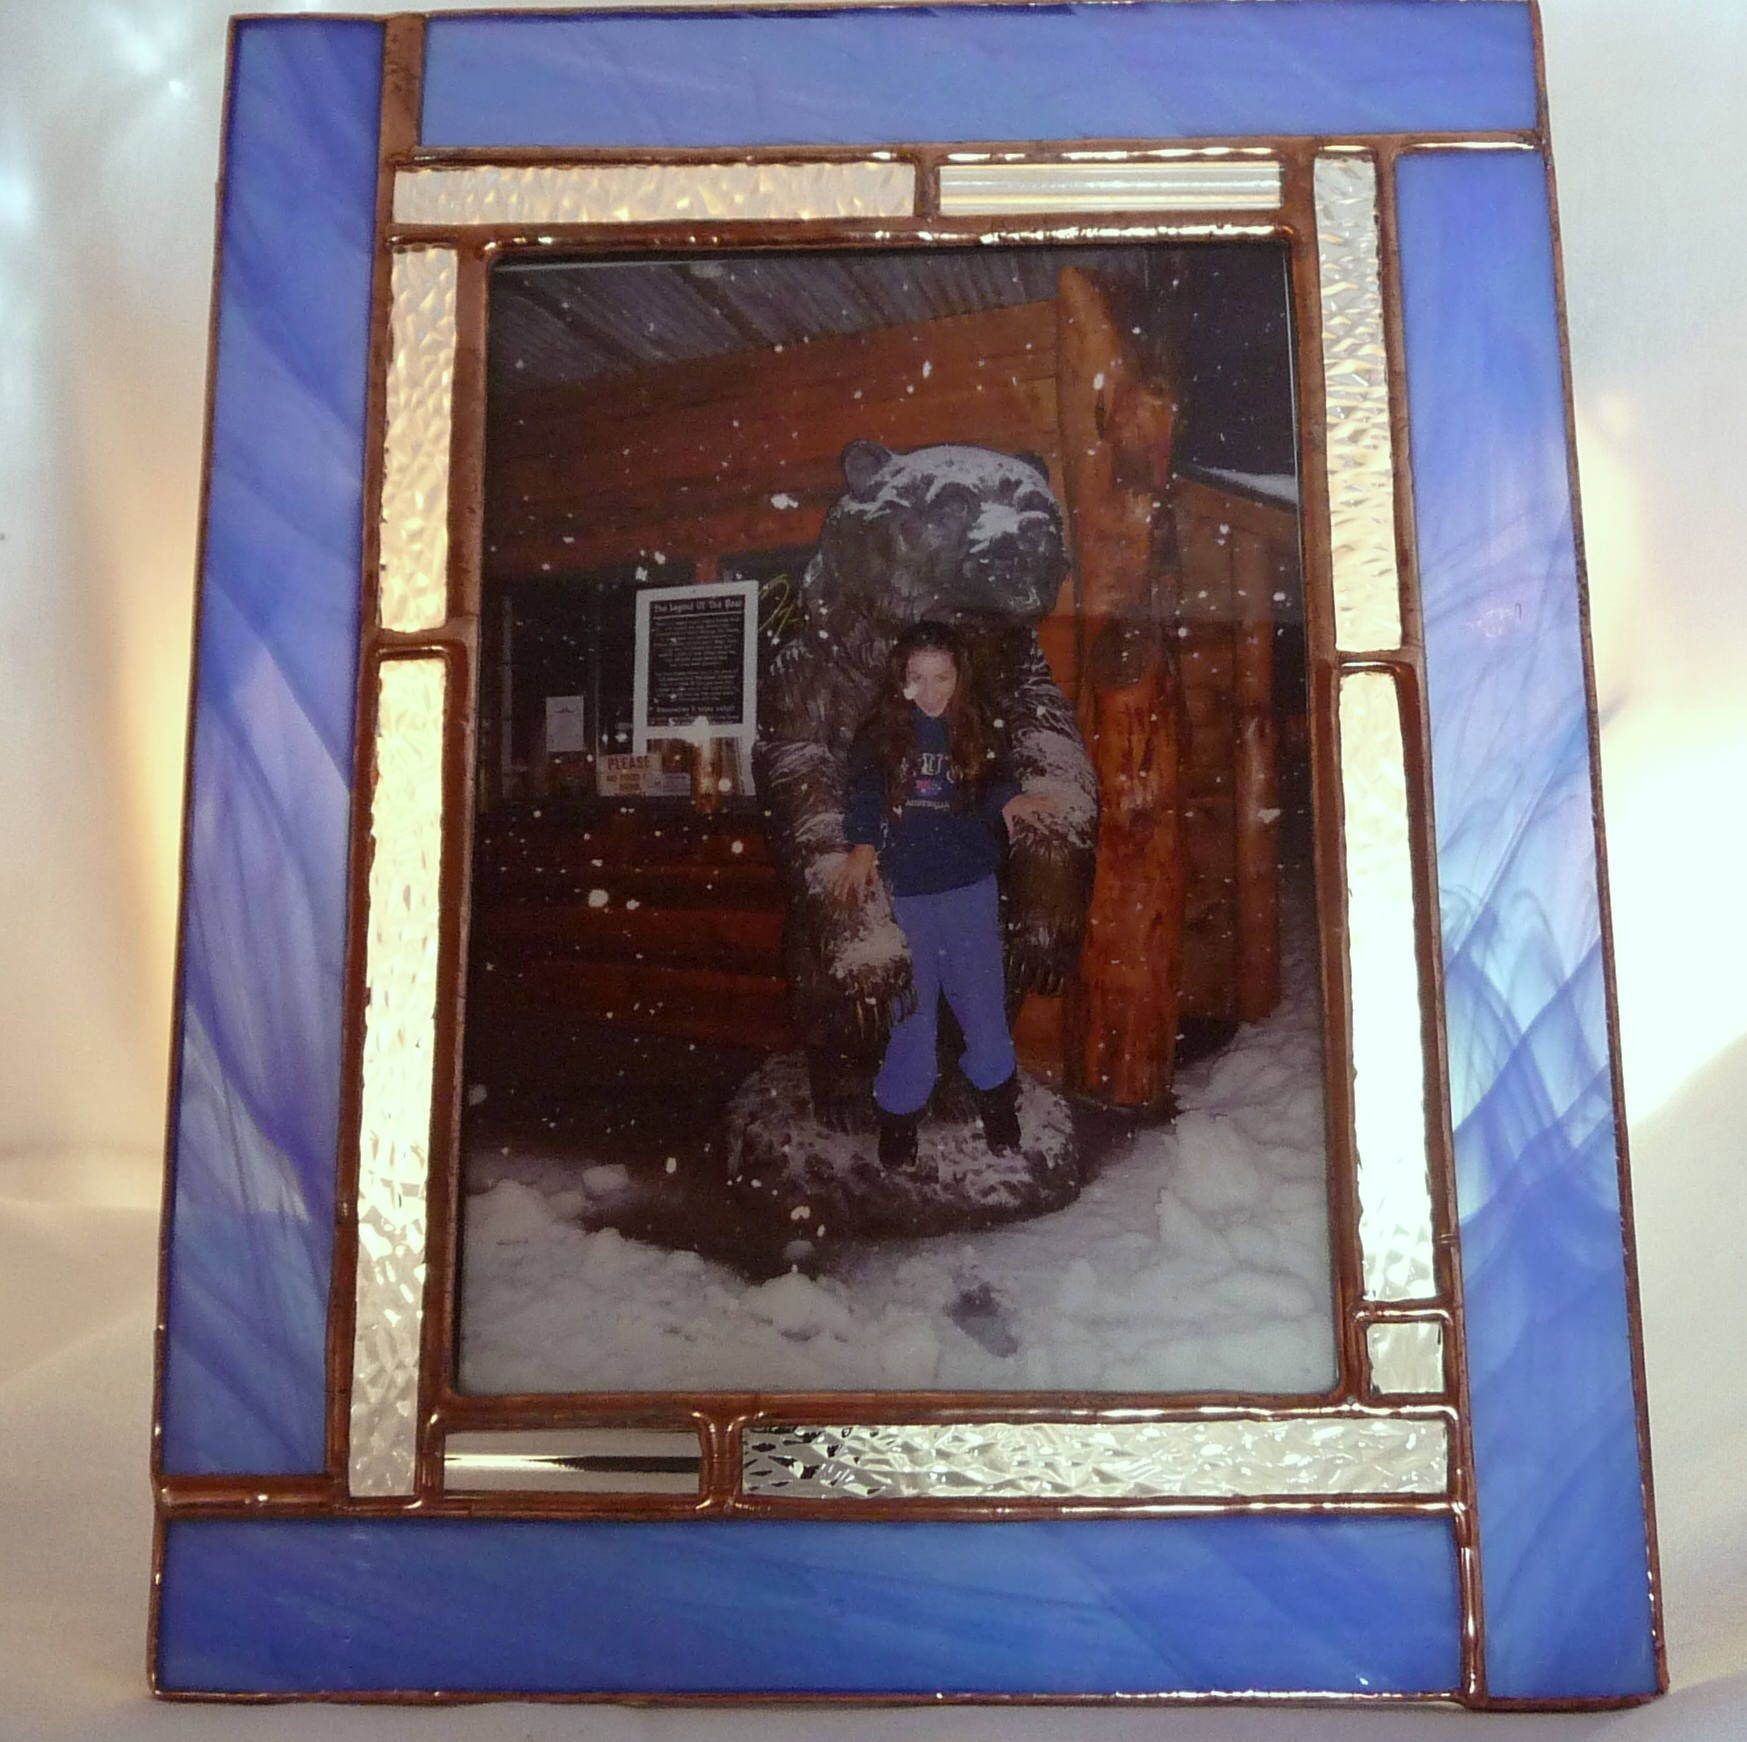 stained glass art picture frame 5x7 christmas gift picture frame wedding gift 5x7 blue and white transparent glass clear texture glass